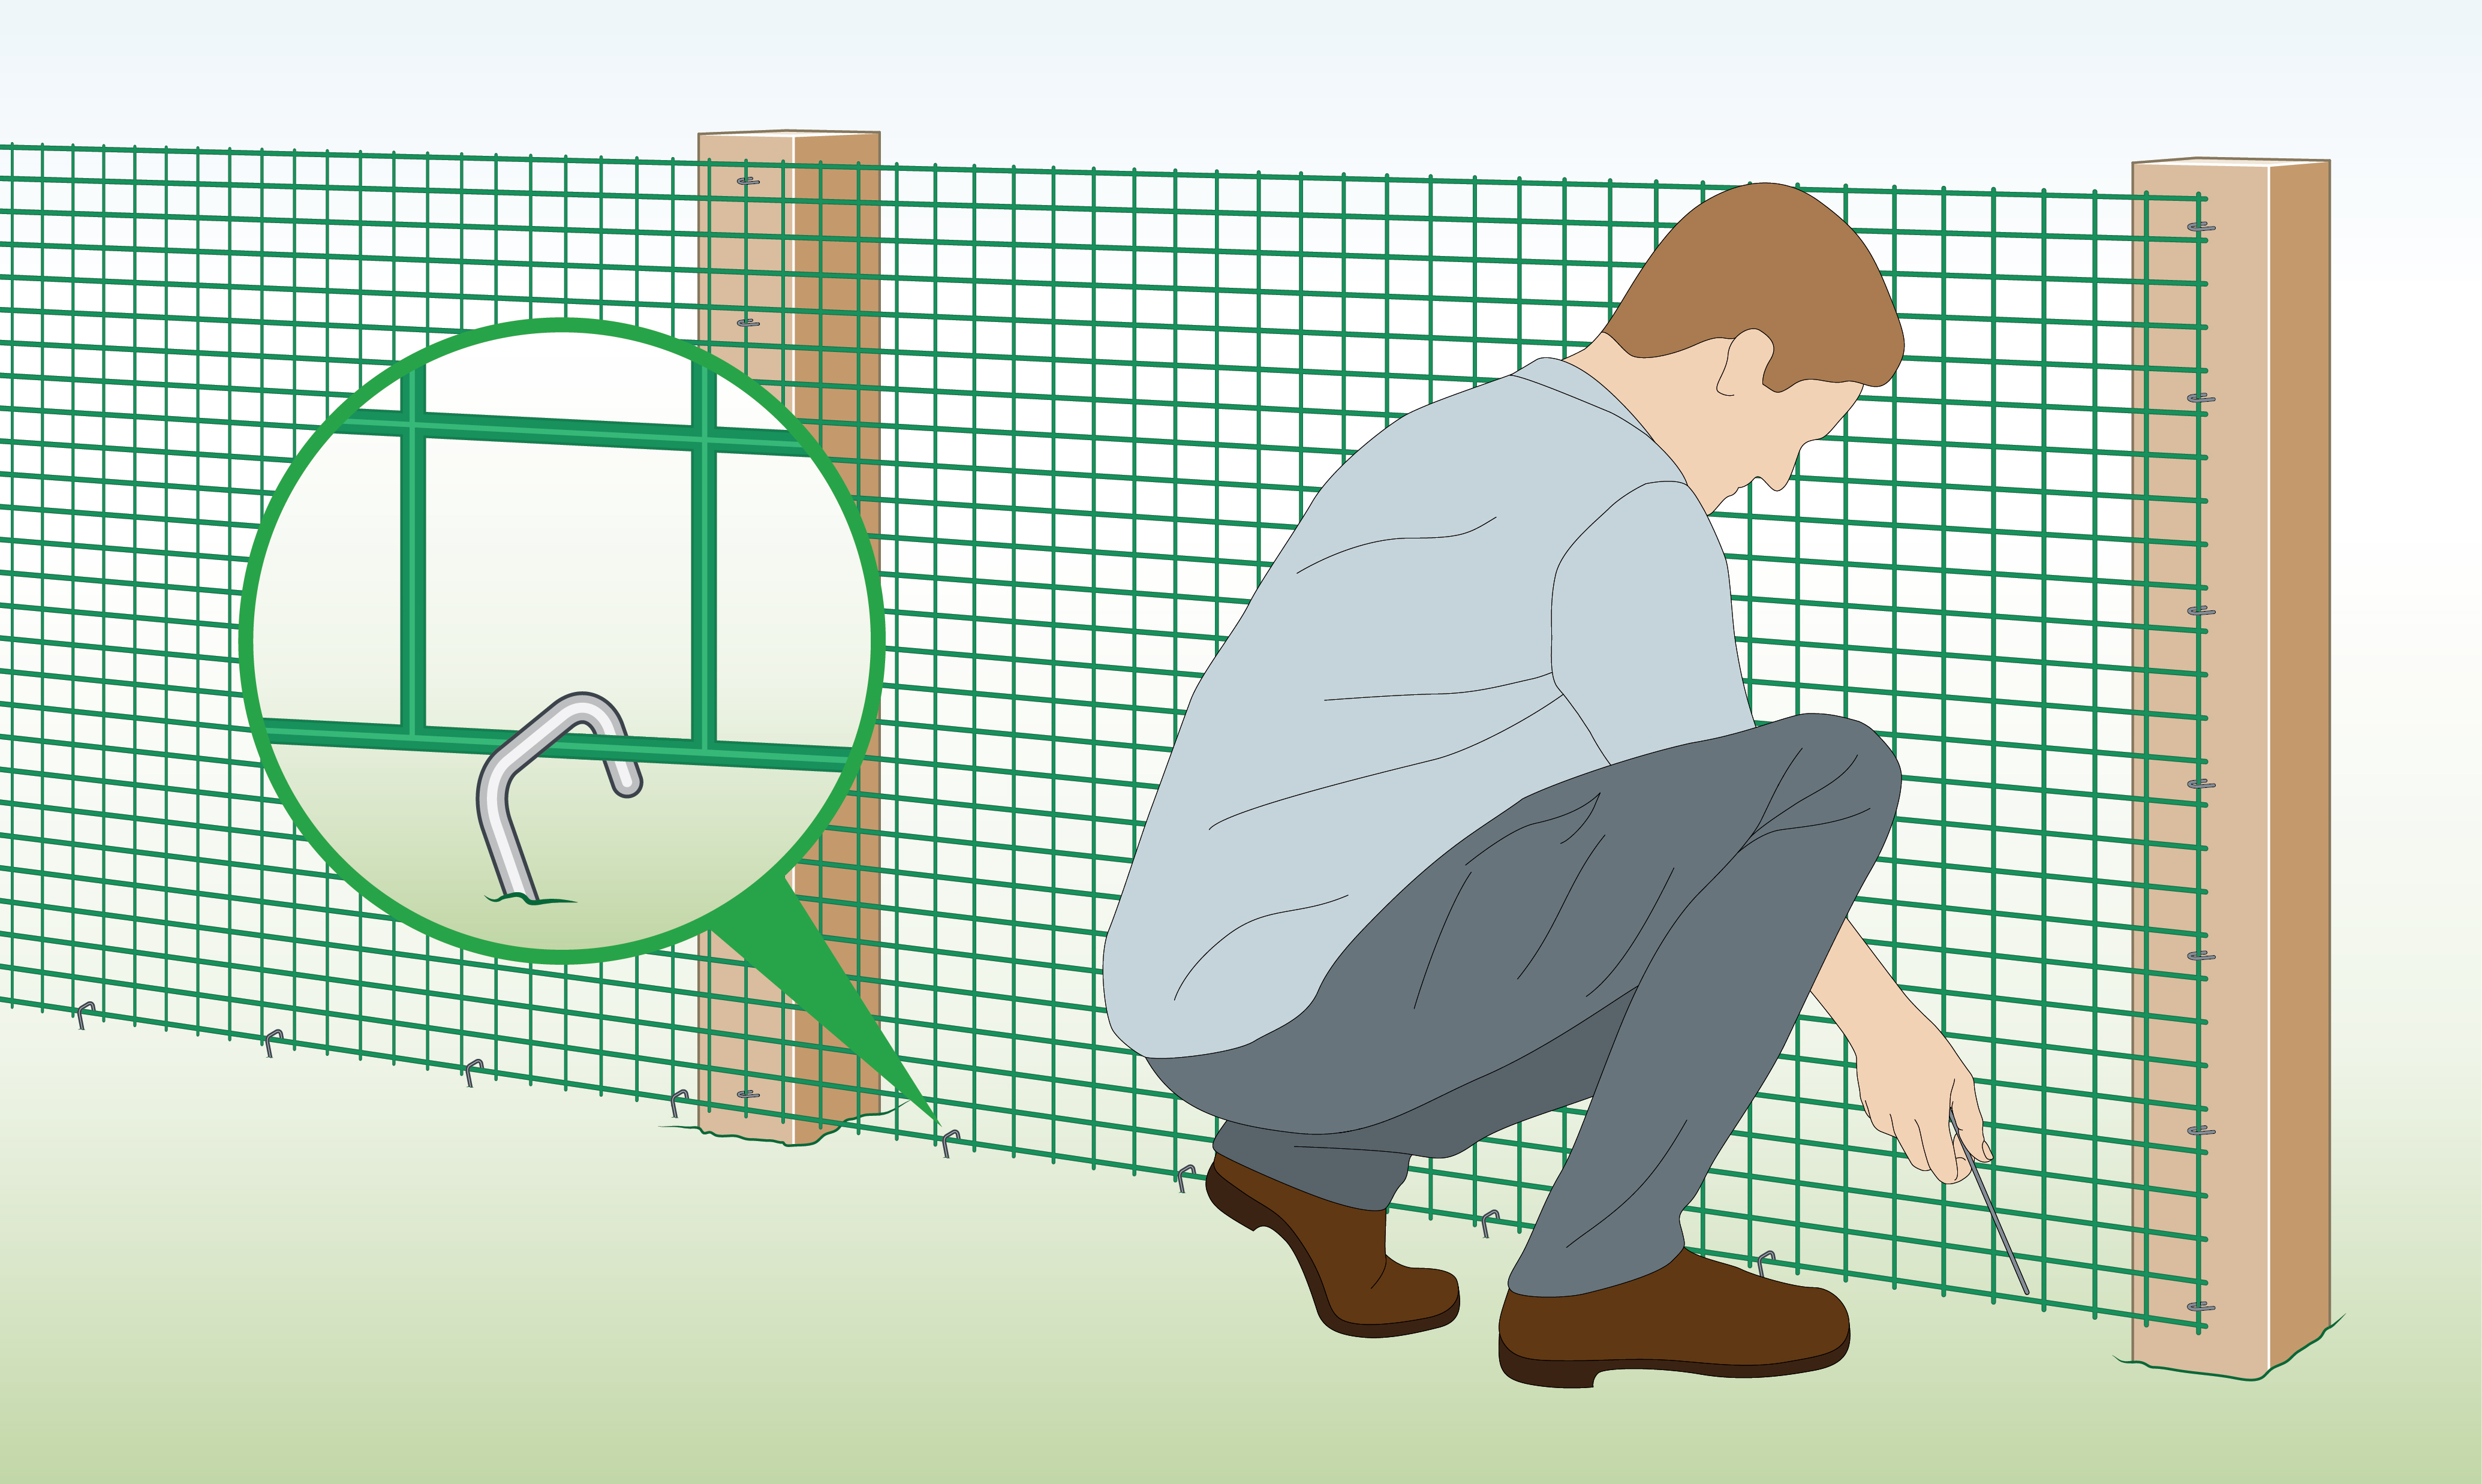 fix-plastic-mesh-with-ground-pegs